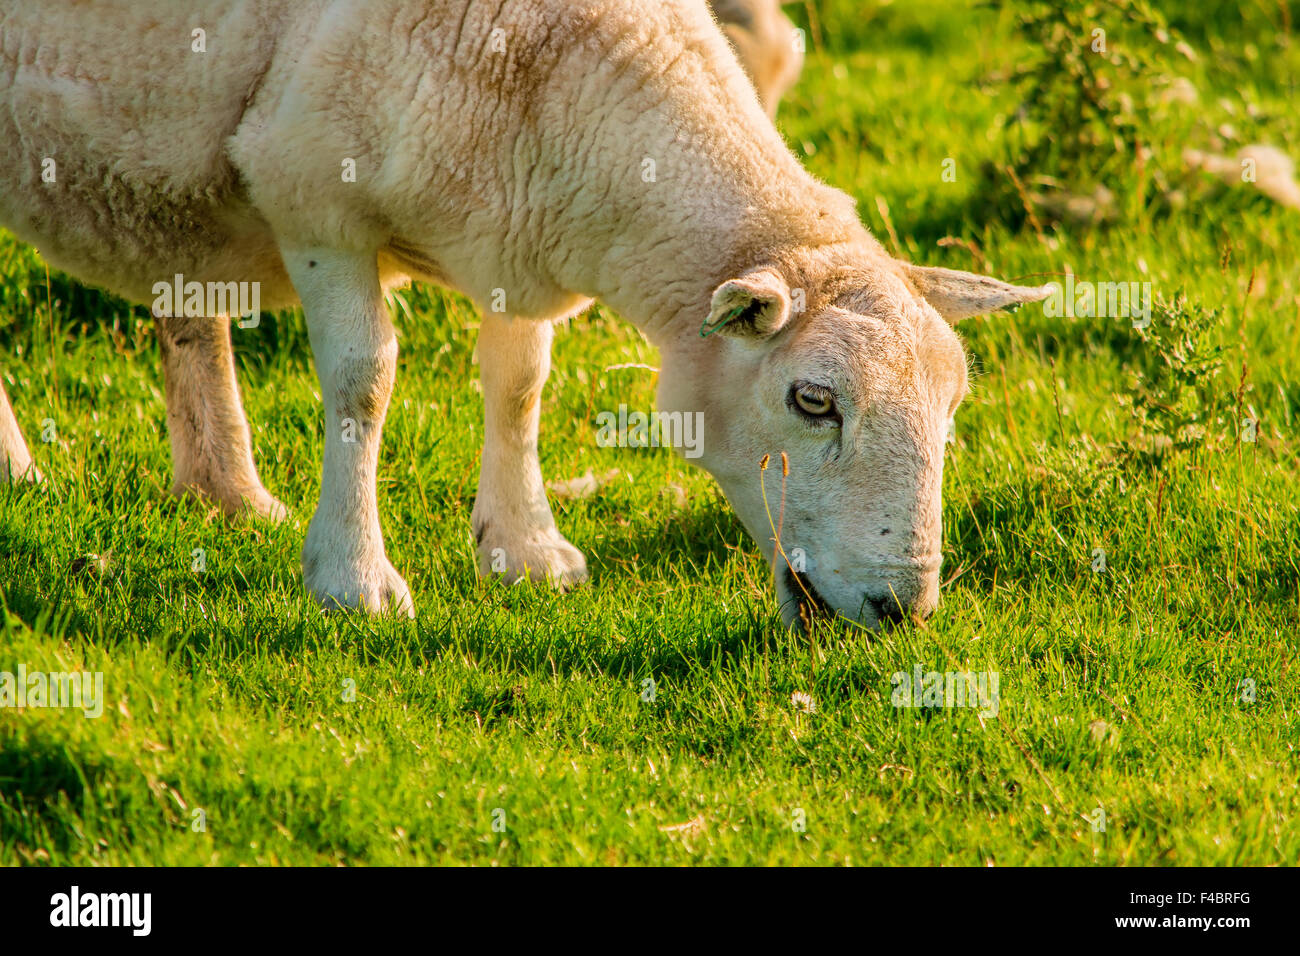 September 2015, sheep in on a meadow in Scotland - Stock Image